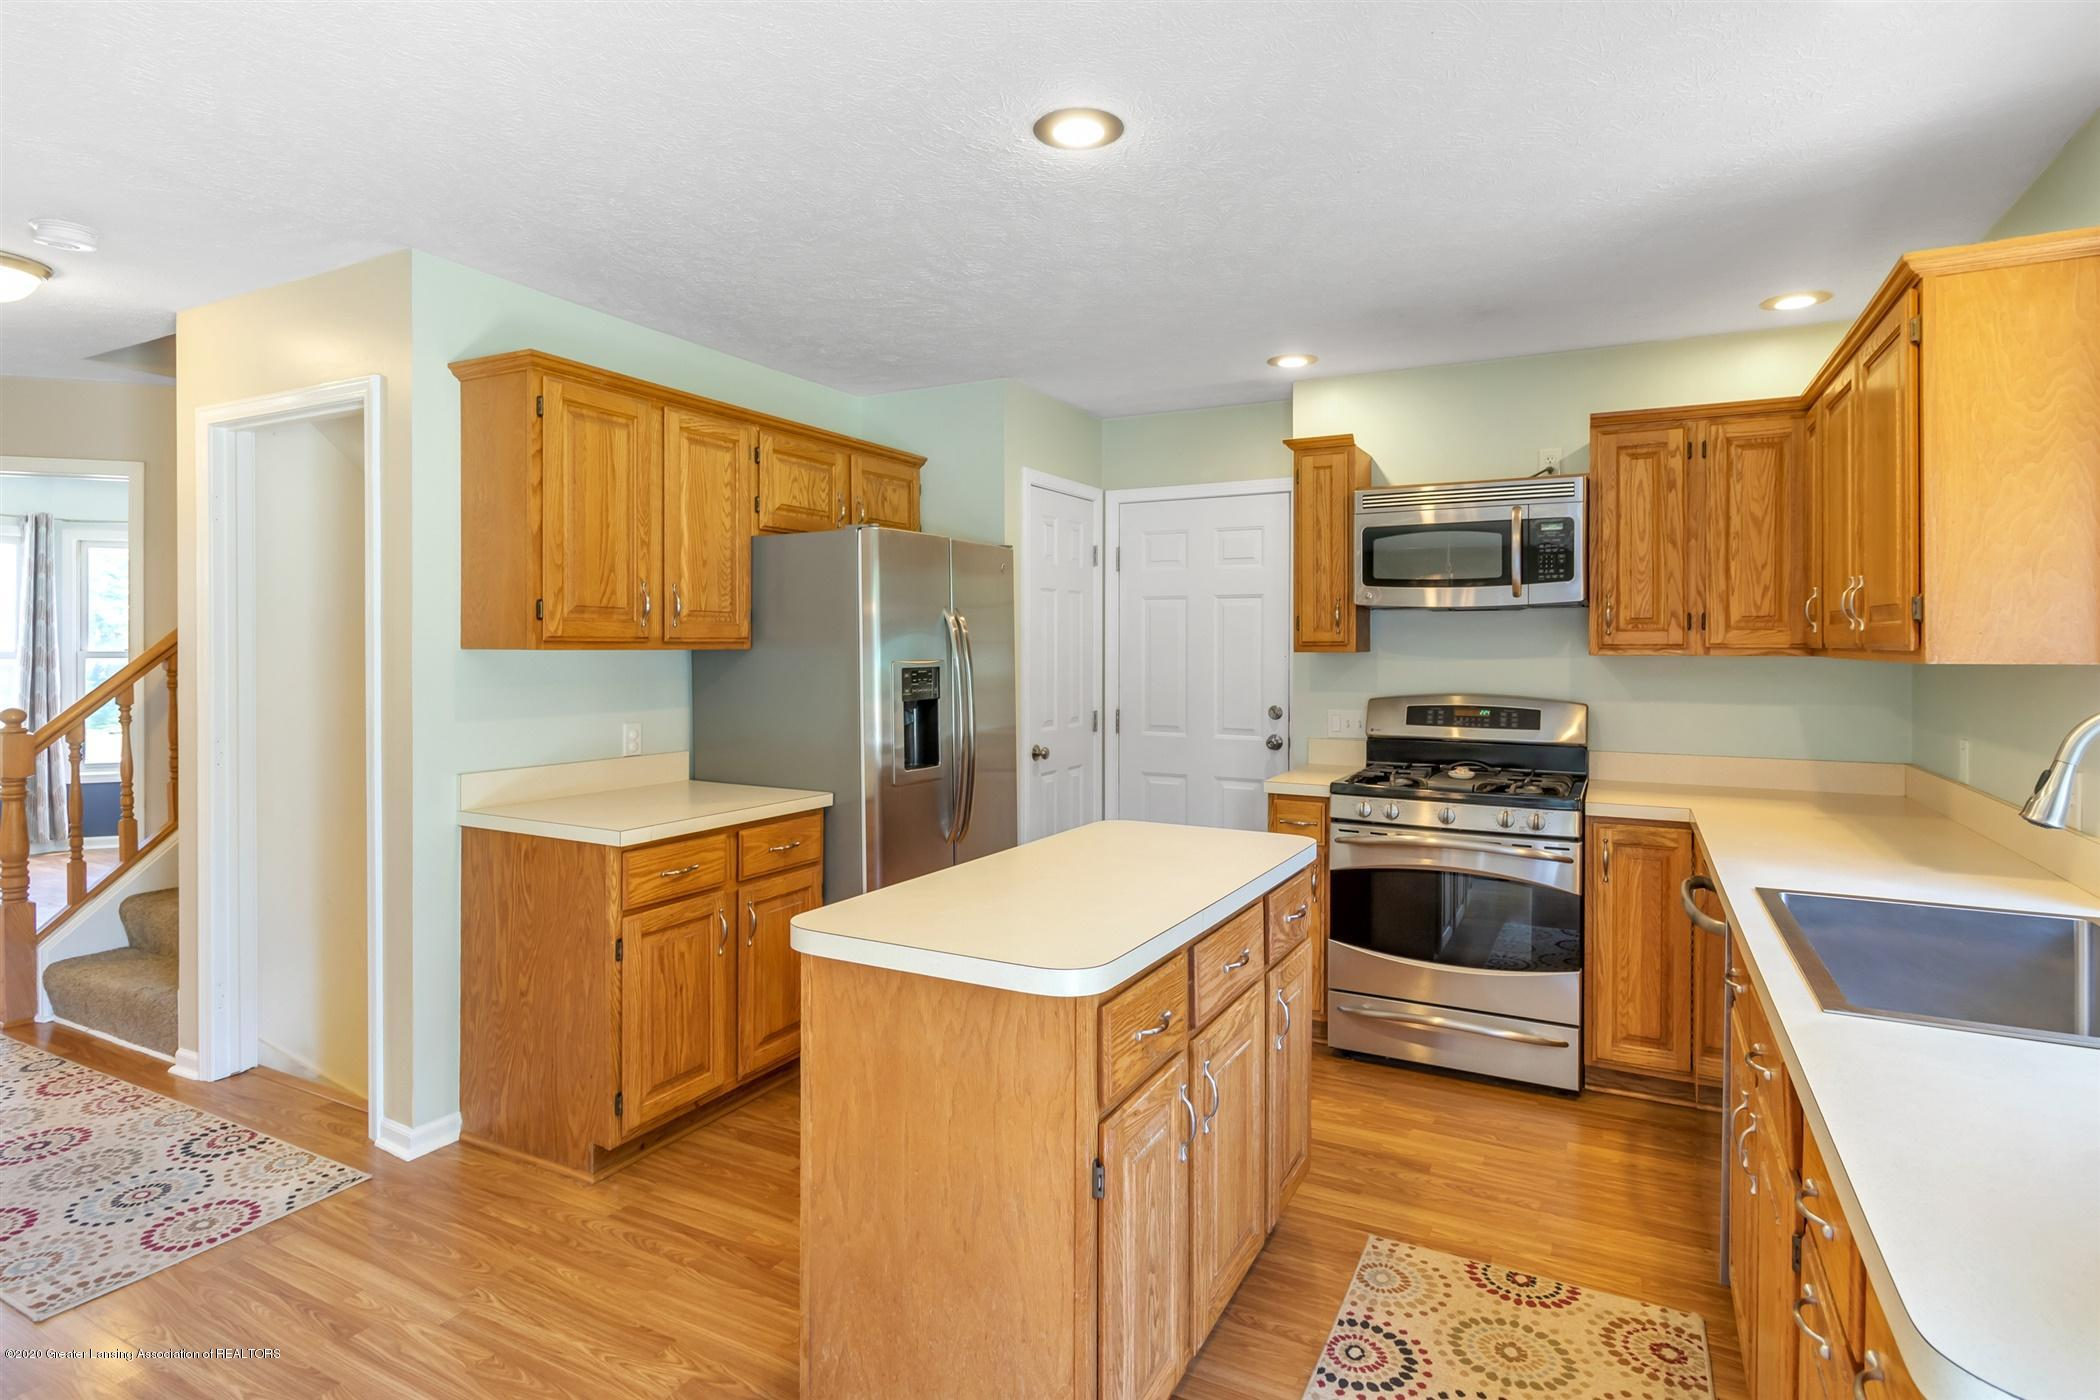 2945 Whistlewood Way - 17-2945Whistlewood-WindowStill-Real - 17